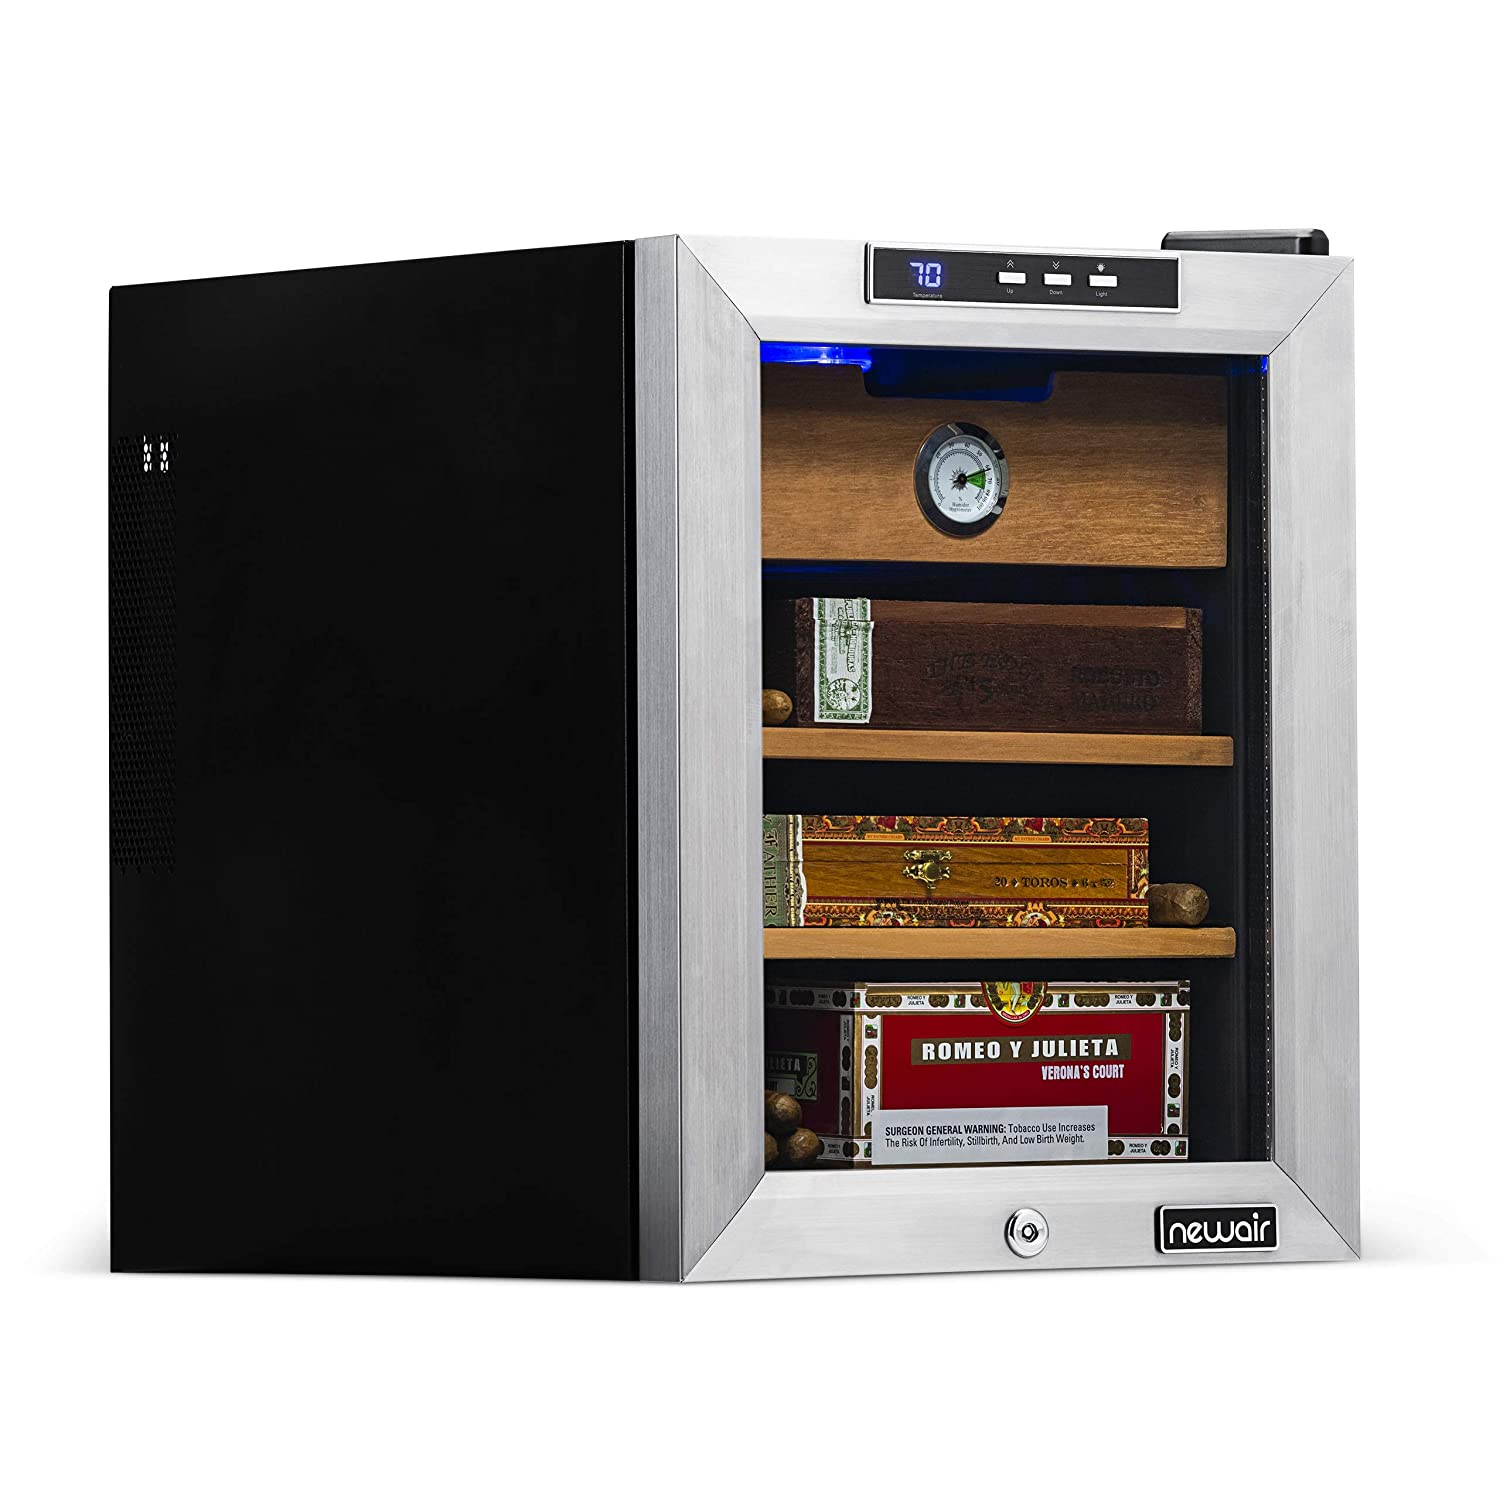 NewAir Cooler and Humidor, Climate Controlled with Heating and Cooling, Holds 250 Cigars, CC-100H, Count